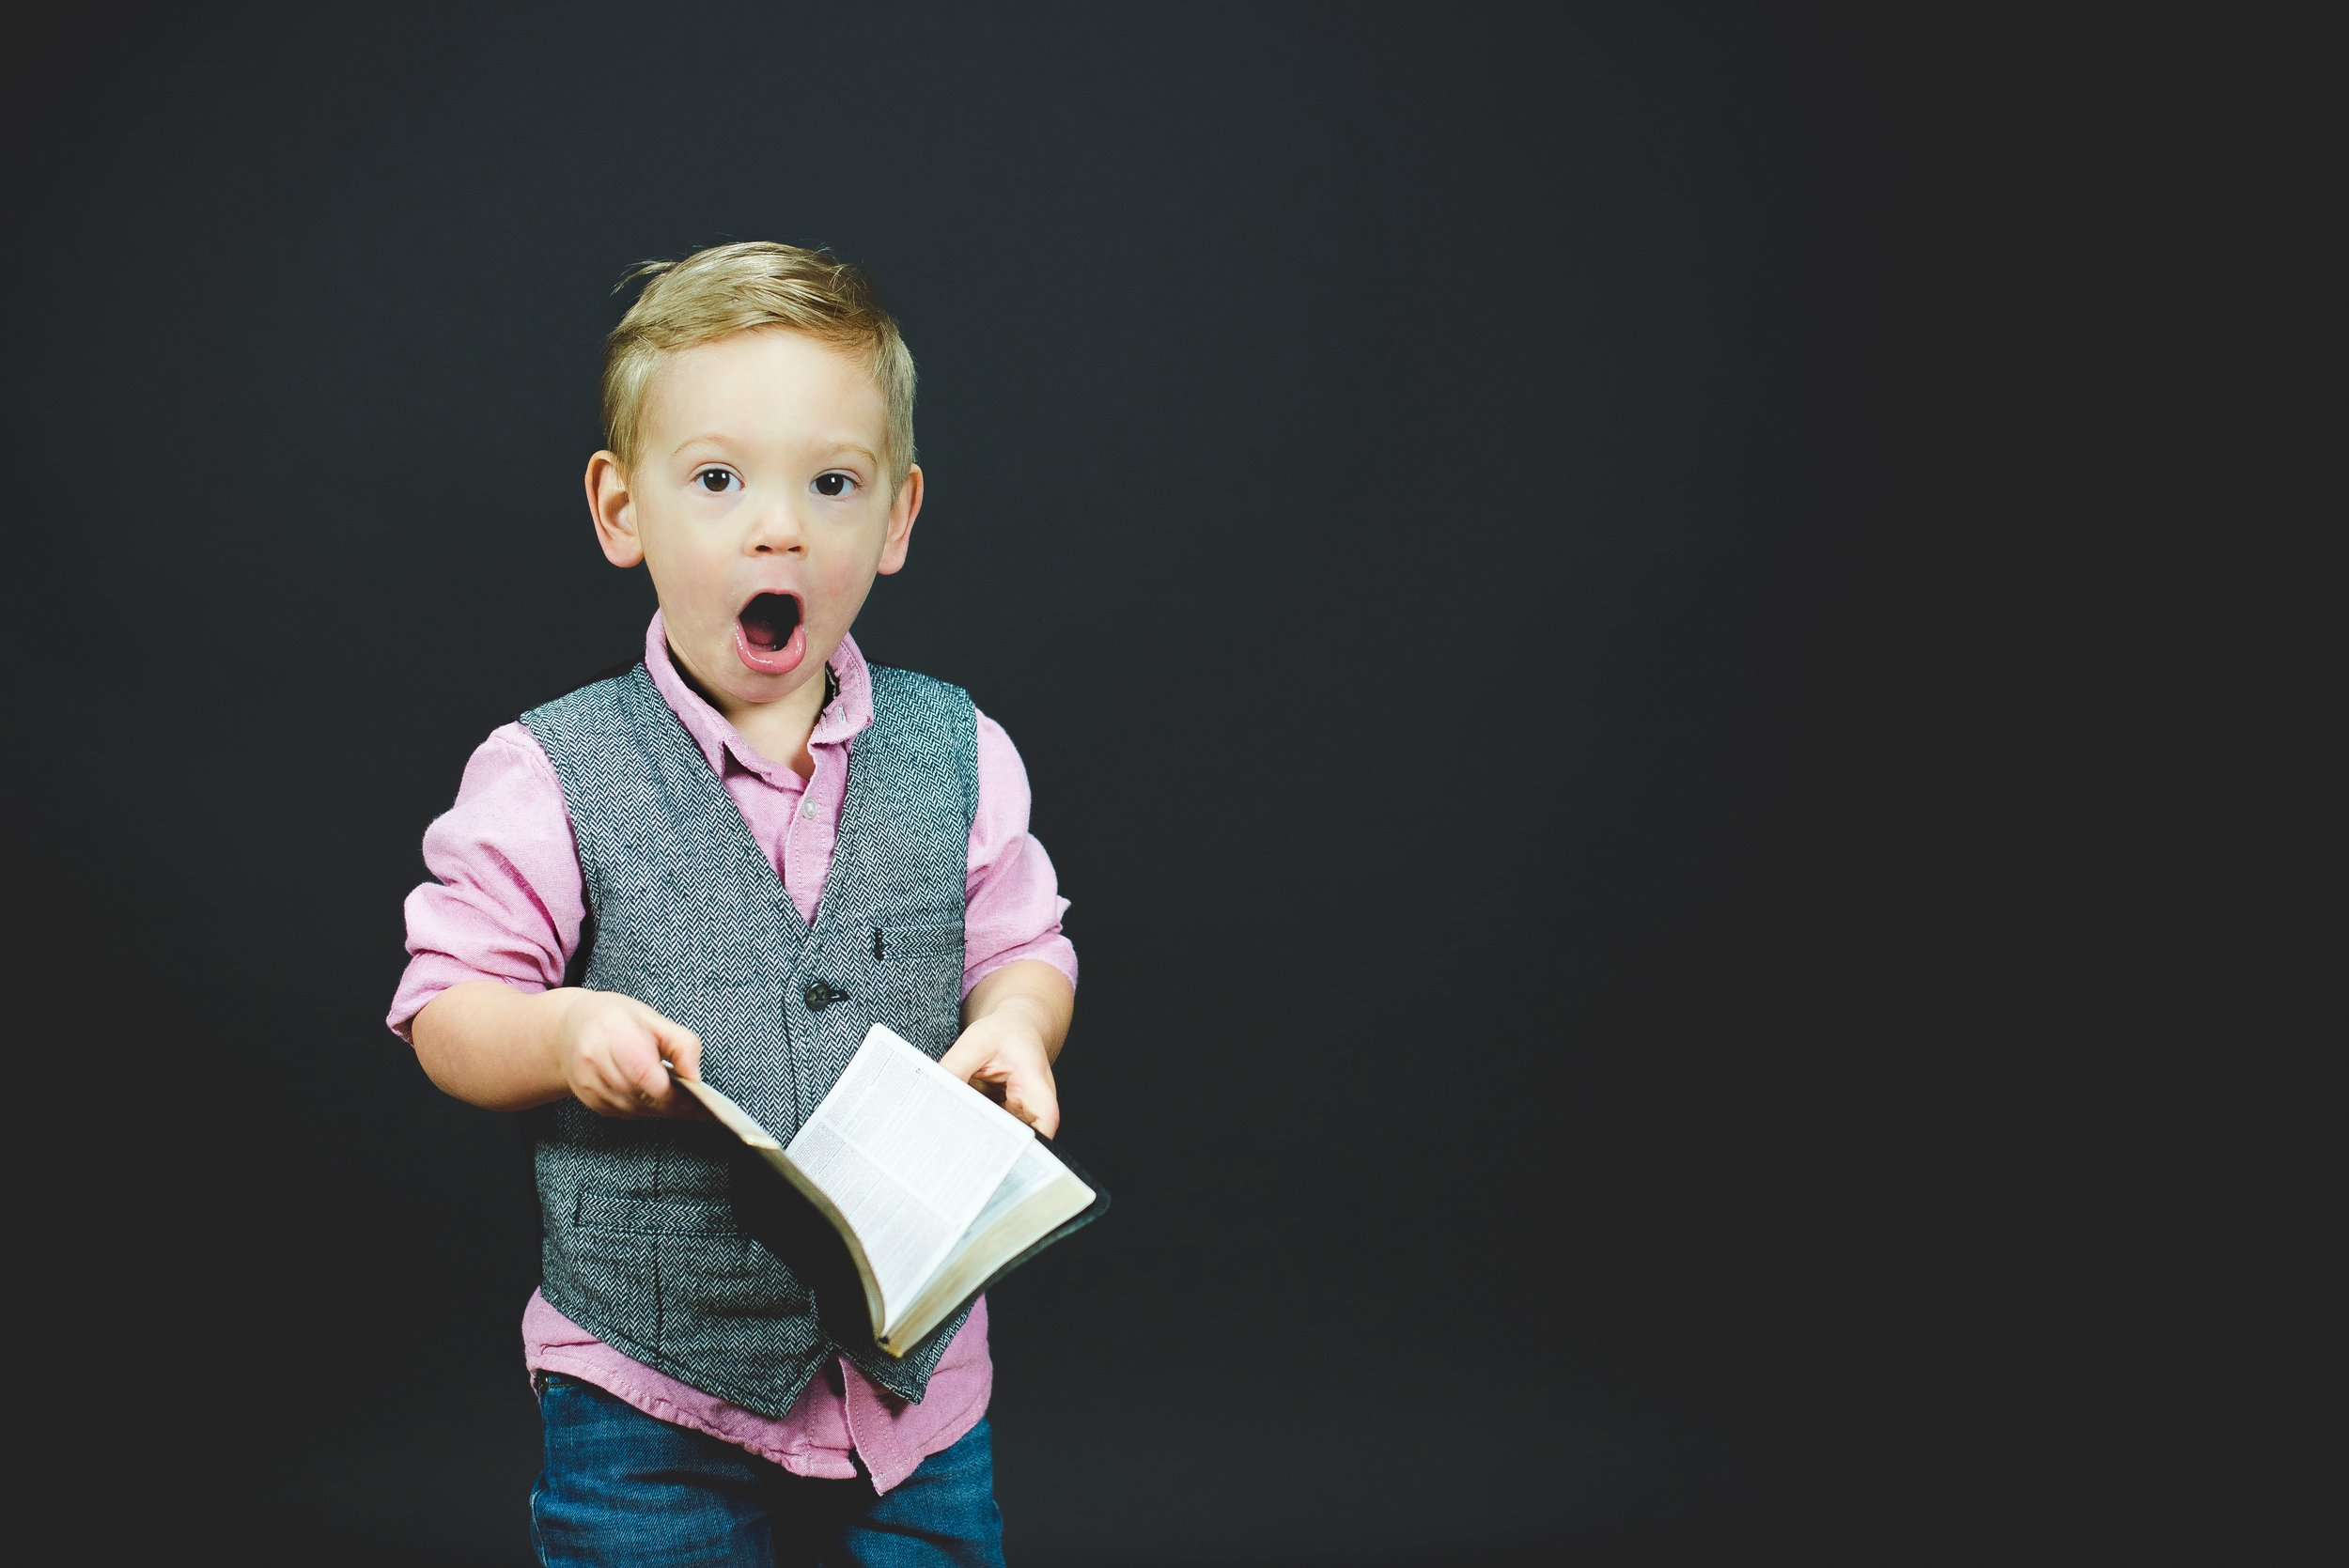 Boy looking shocked and holding an open book